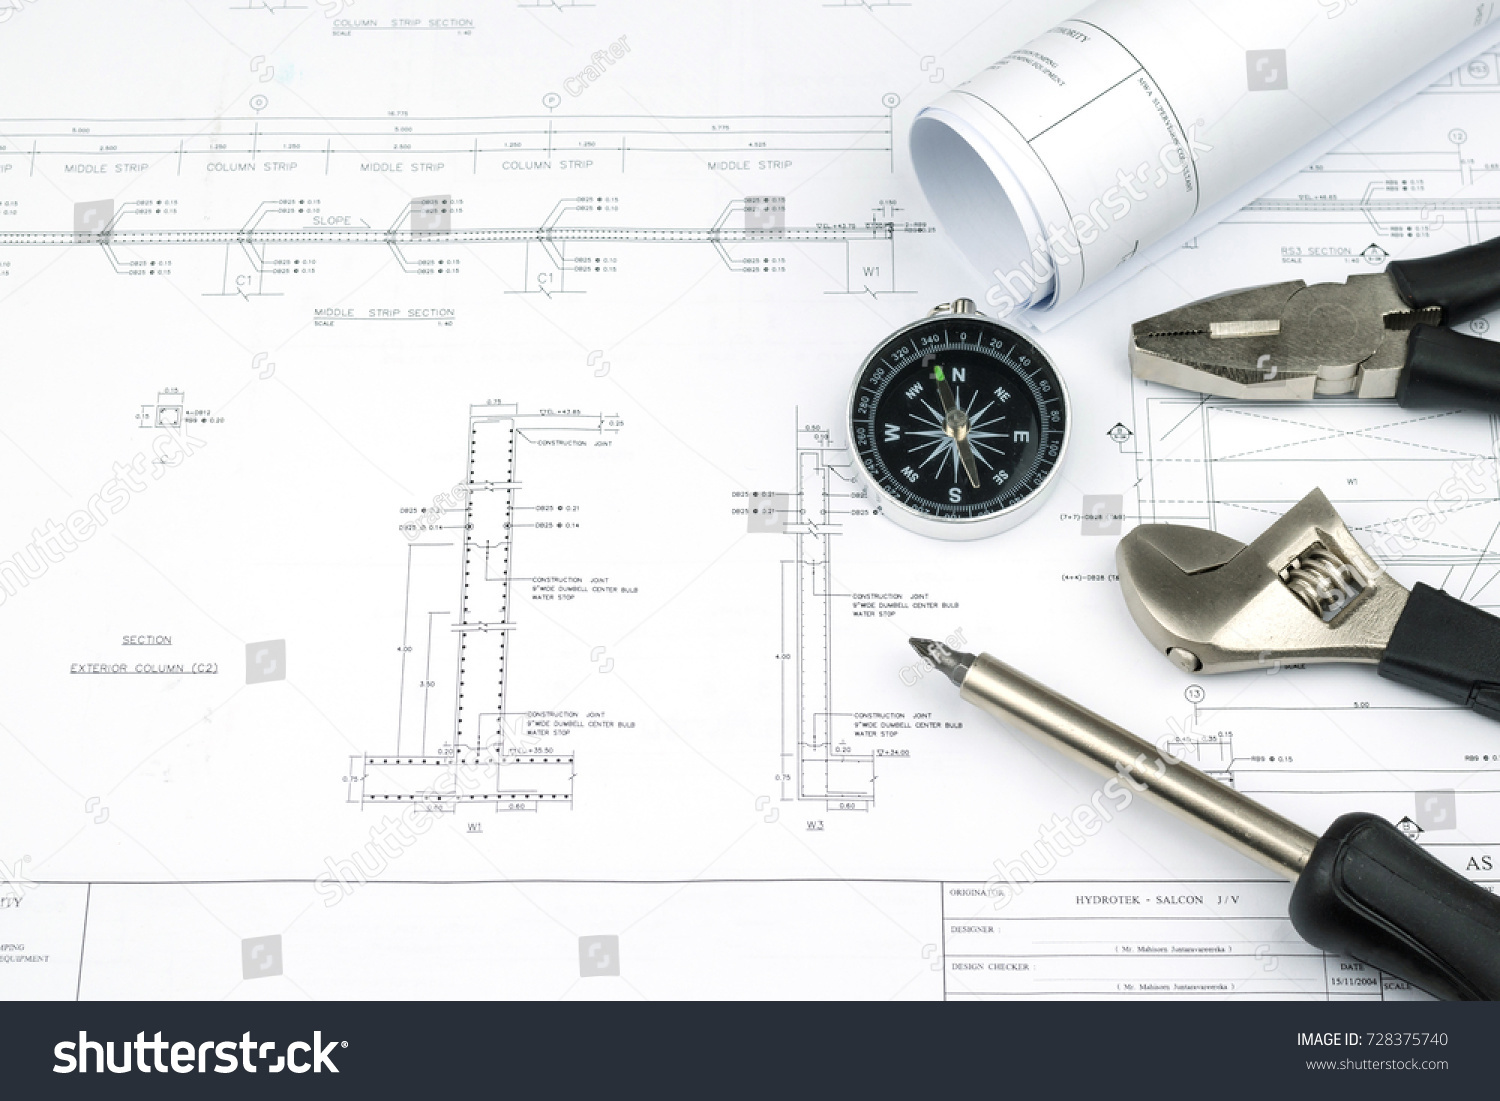 Engineer construction business work concept engineering stock photo engineer construction business work concept engineering blueprint diagrams paper drafting and industrial equipment technical tools malvernweather Choice Image